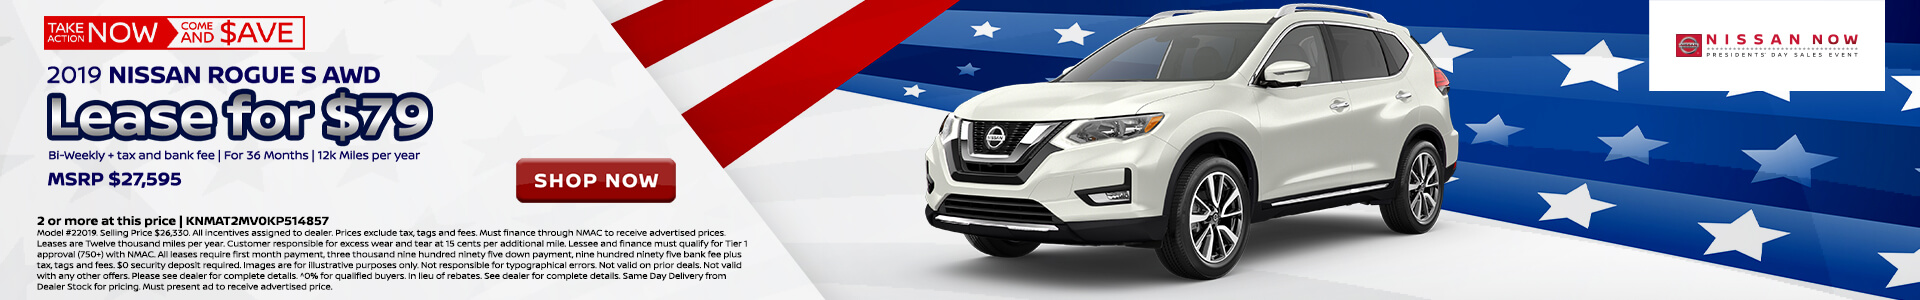 Nissan Rogue $158 Lease